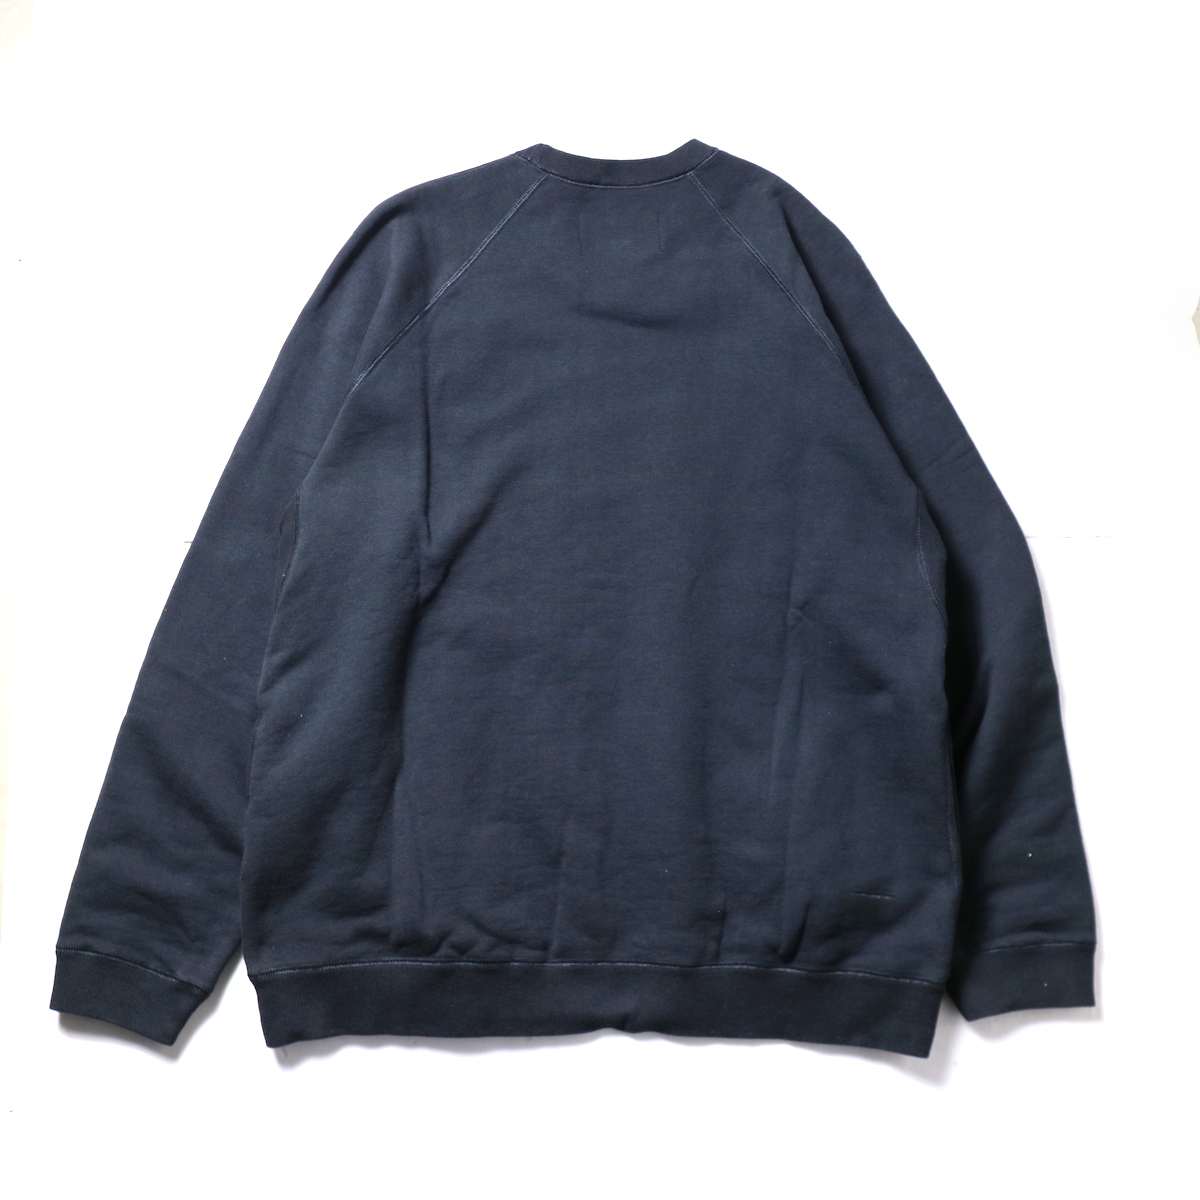 CURLY / FROSTED CREW SWEAT (D.Navy)背面